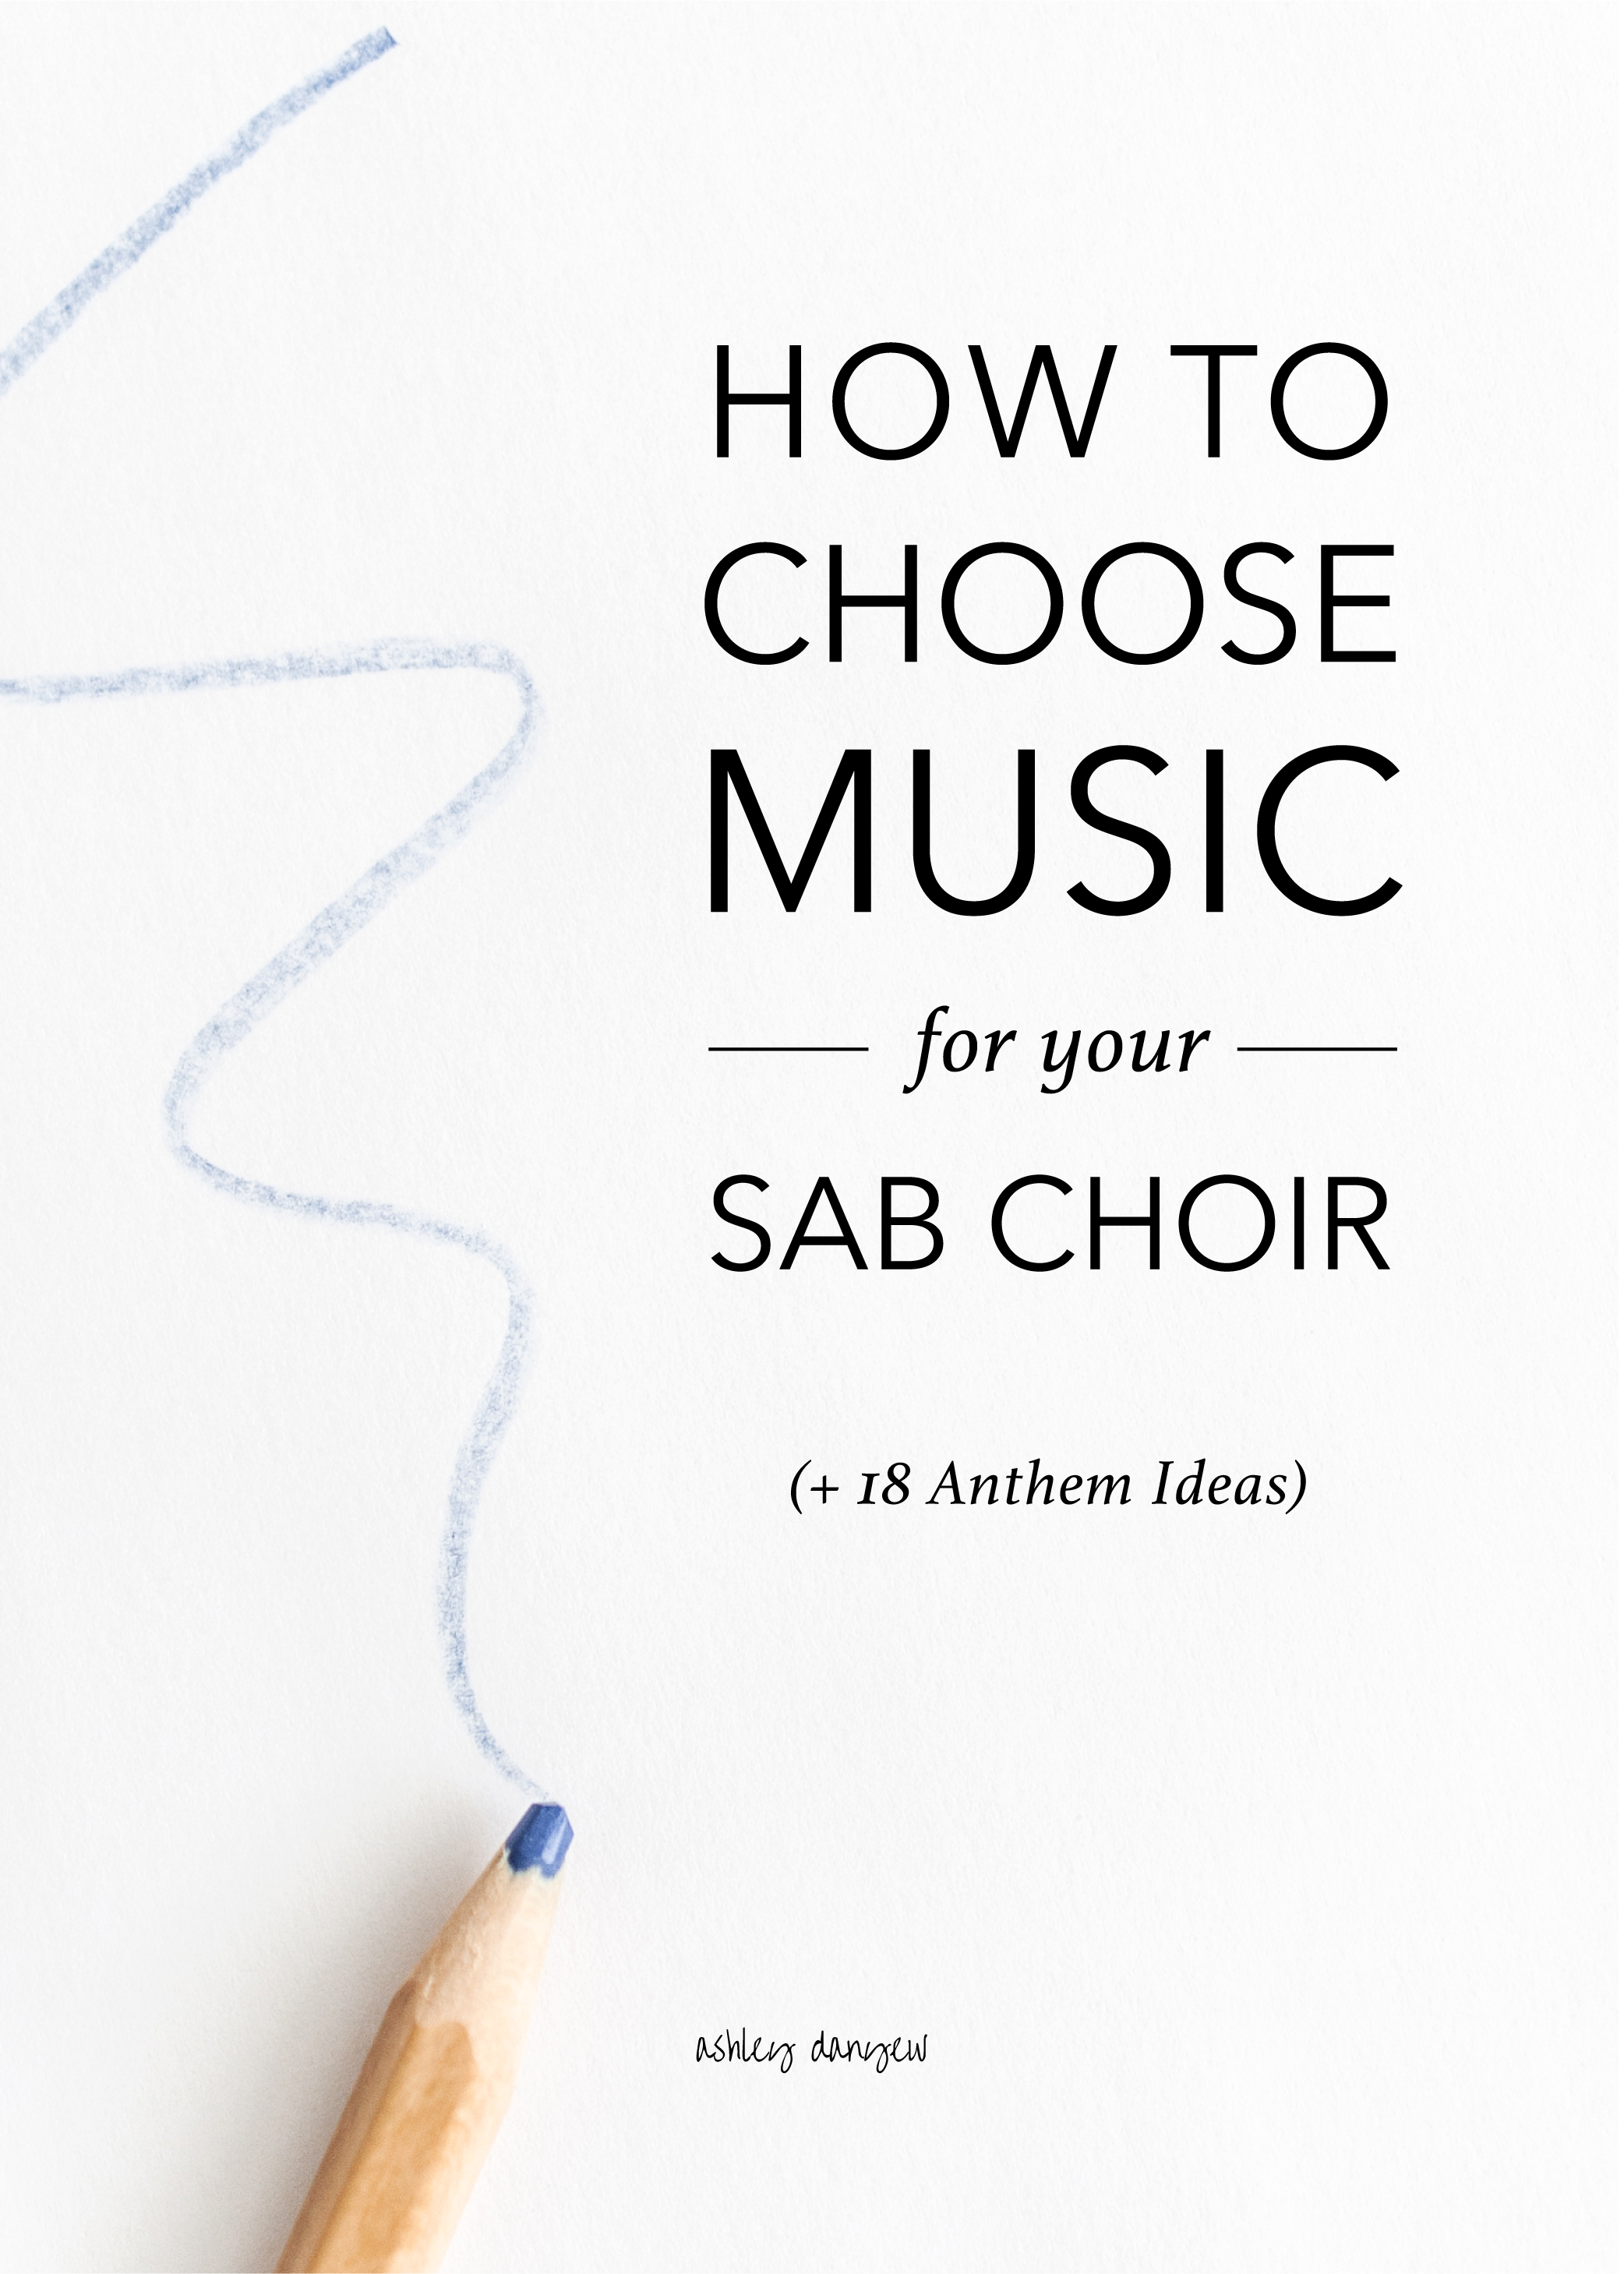 Copy of How to Choose Music for Your SAB Choir (+ 18 Anthem Ideas)